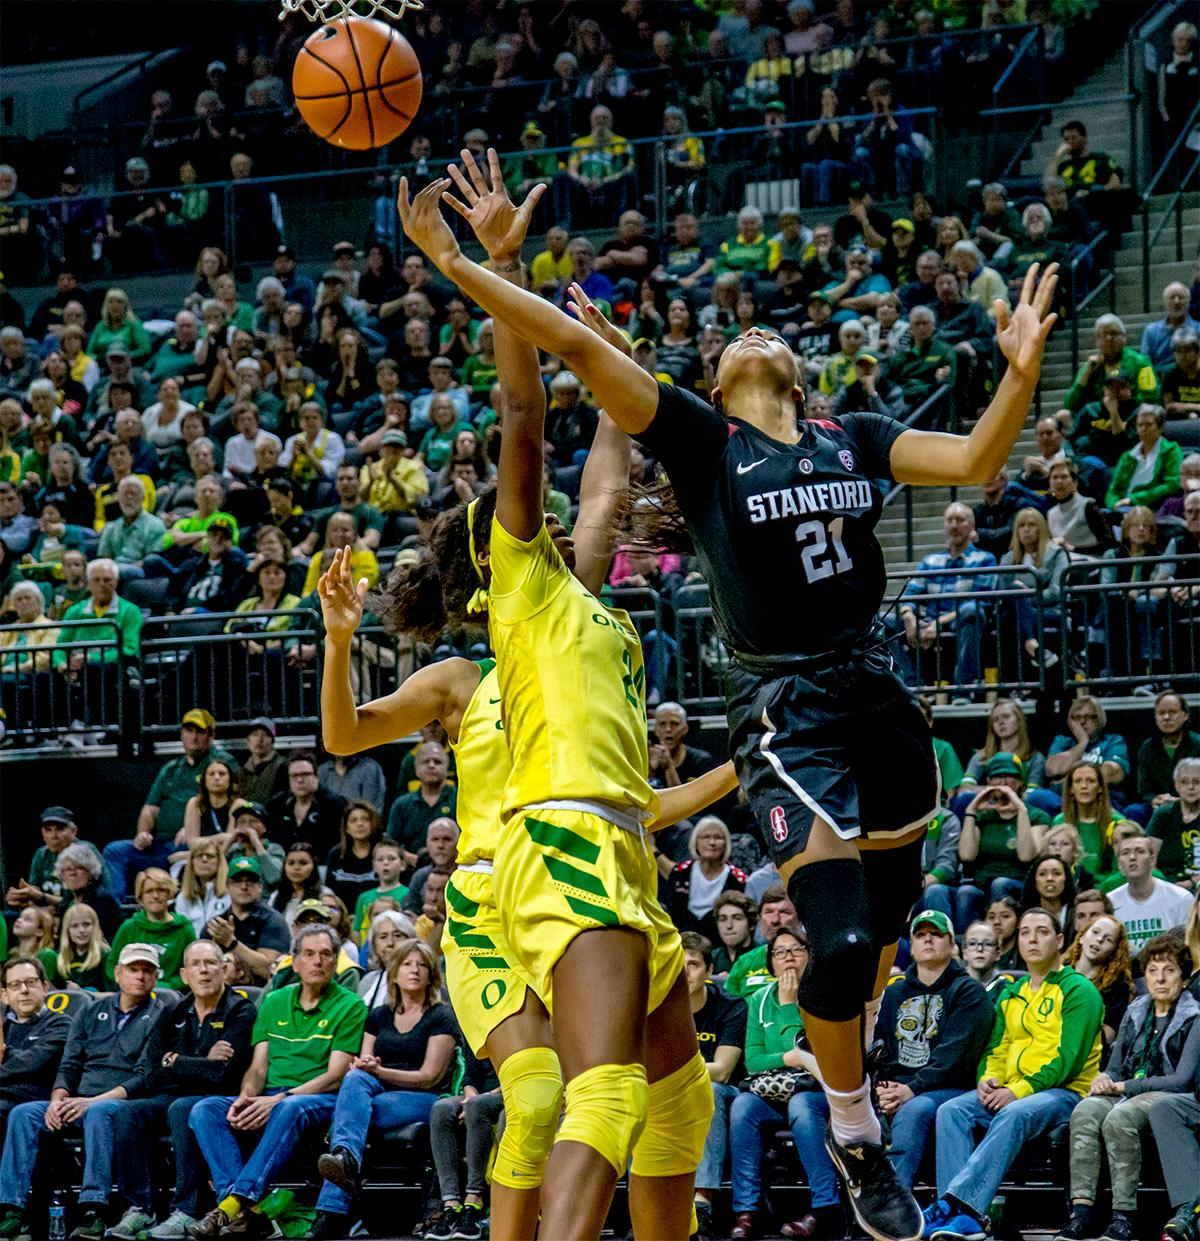 The Cardinal's DiJonai Carrington (#21) goes up as she attempts to make the basket. The Stanford Cardinal defeated the Oregon Ducks 78-65 on Sunday afternoon at Matthew Knight Arena. Stanford is now 10-2 in conference play and with this loss the Ducks drop to 10-2. Leading the Stanford Cardinal was Brittany McPhee with 33 points, Alanna Smith with 14 points, and Kiana Williams with 14 points. For the Ducks Sabrina Ionescu led with 22 points, Ruthy Hebard added 16 points, and Satou Sabally put in 14 points. Photo by August Frank, Oregon News Lab